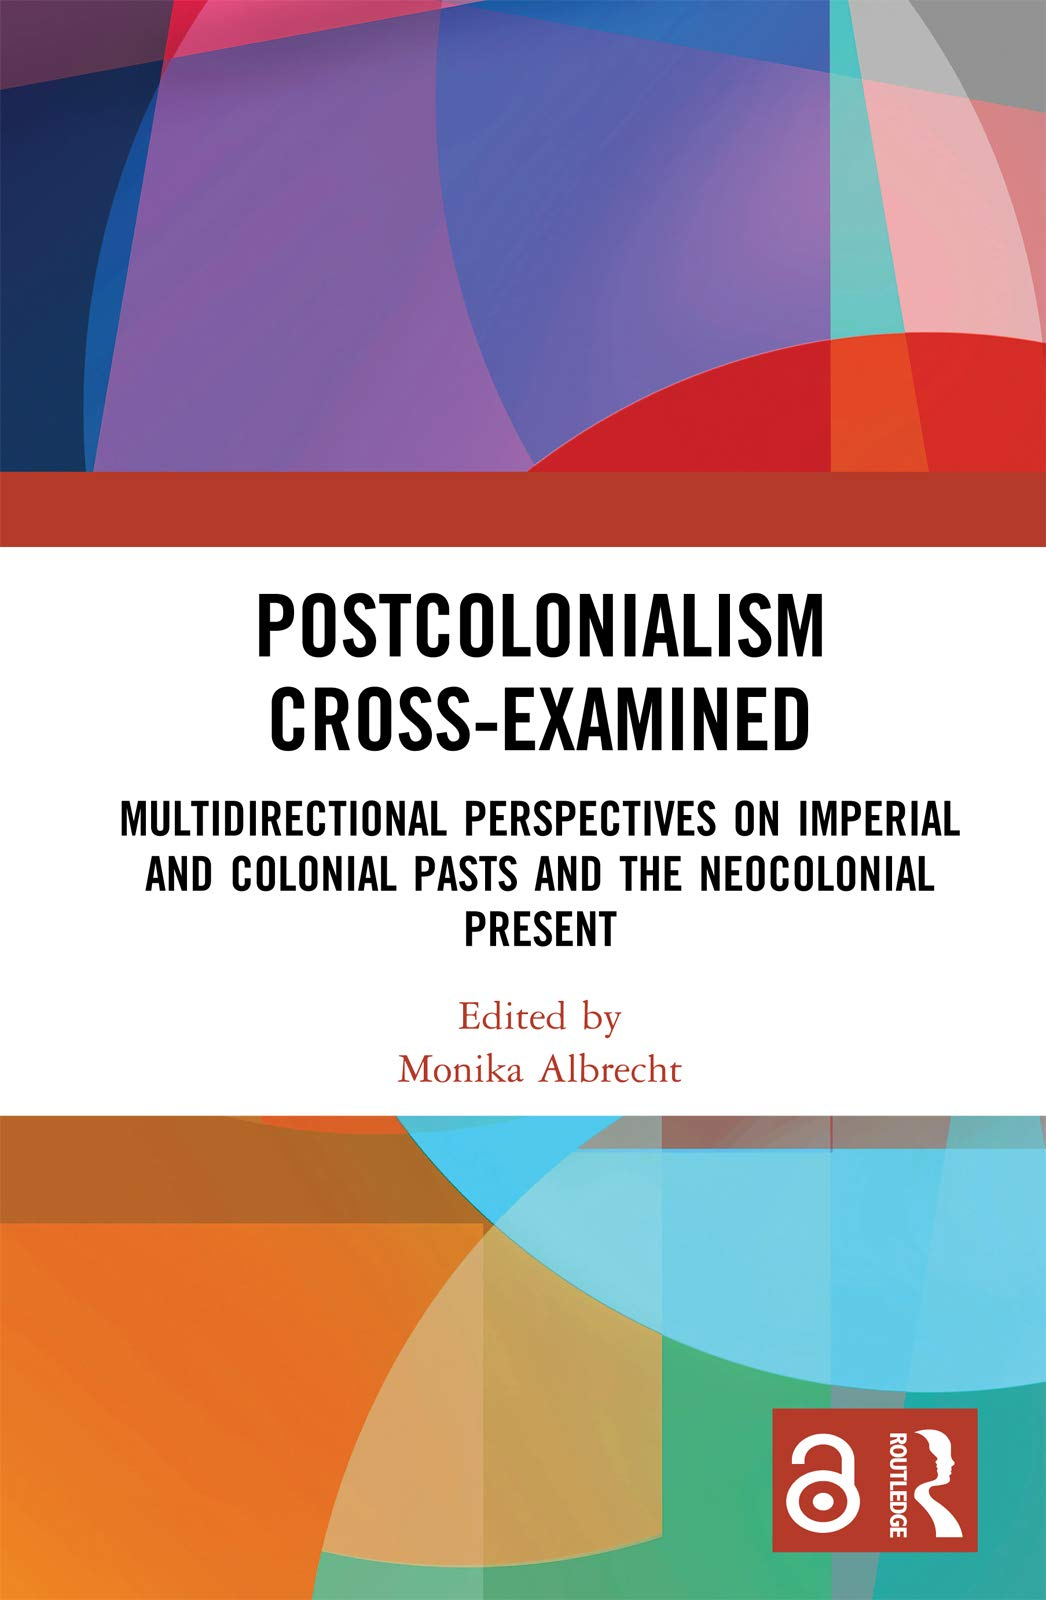 Download Postcolonialism Cross-Examined: Multidirectional Perspectives On Imperial And Colonial Pasts And The Neocolonial Present (... 